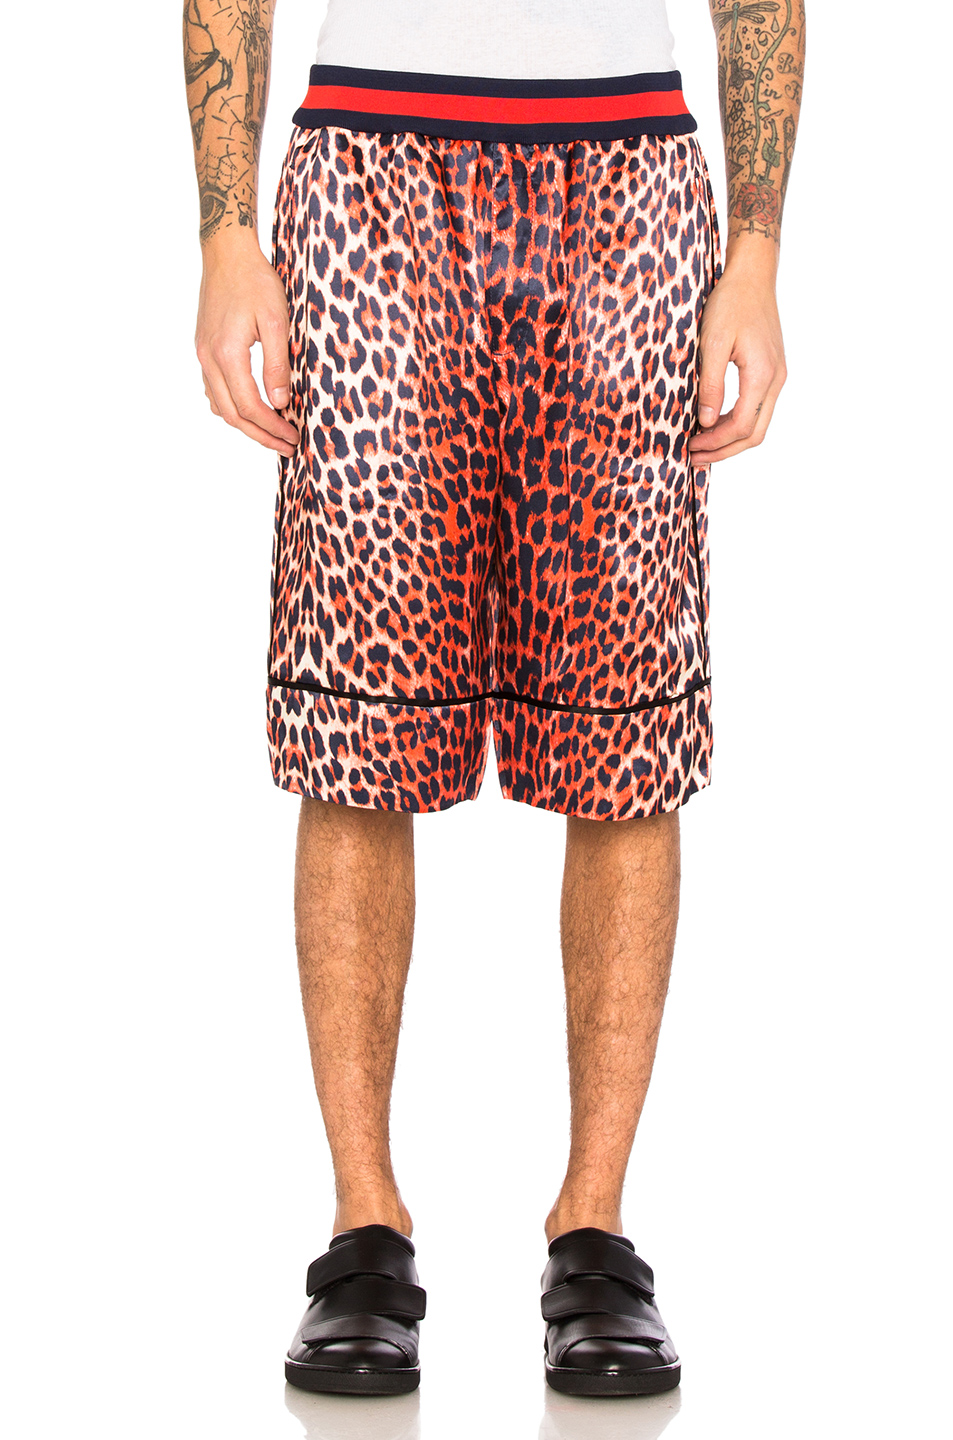 3.1 phillip lim Reversible Leopard Shorts in Animal Print,Orange,Black